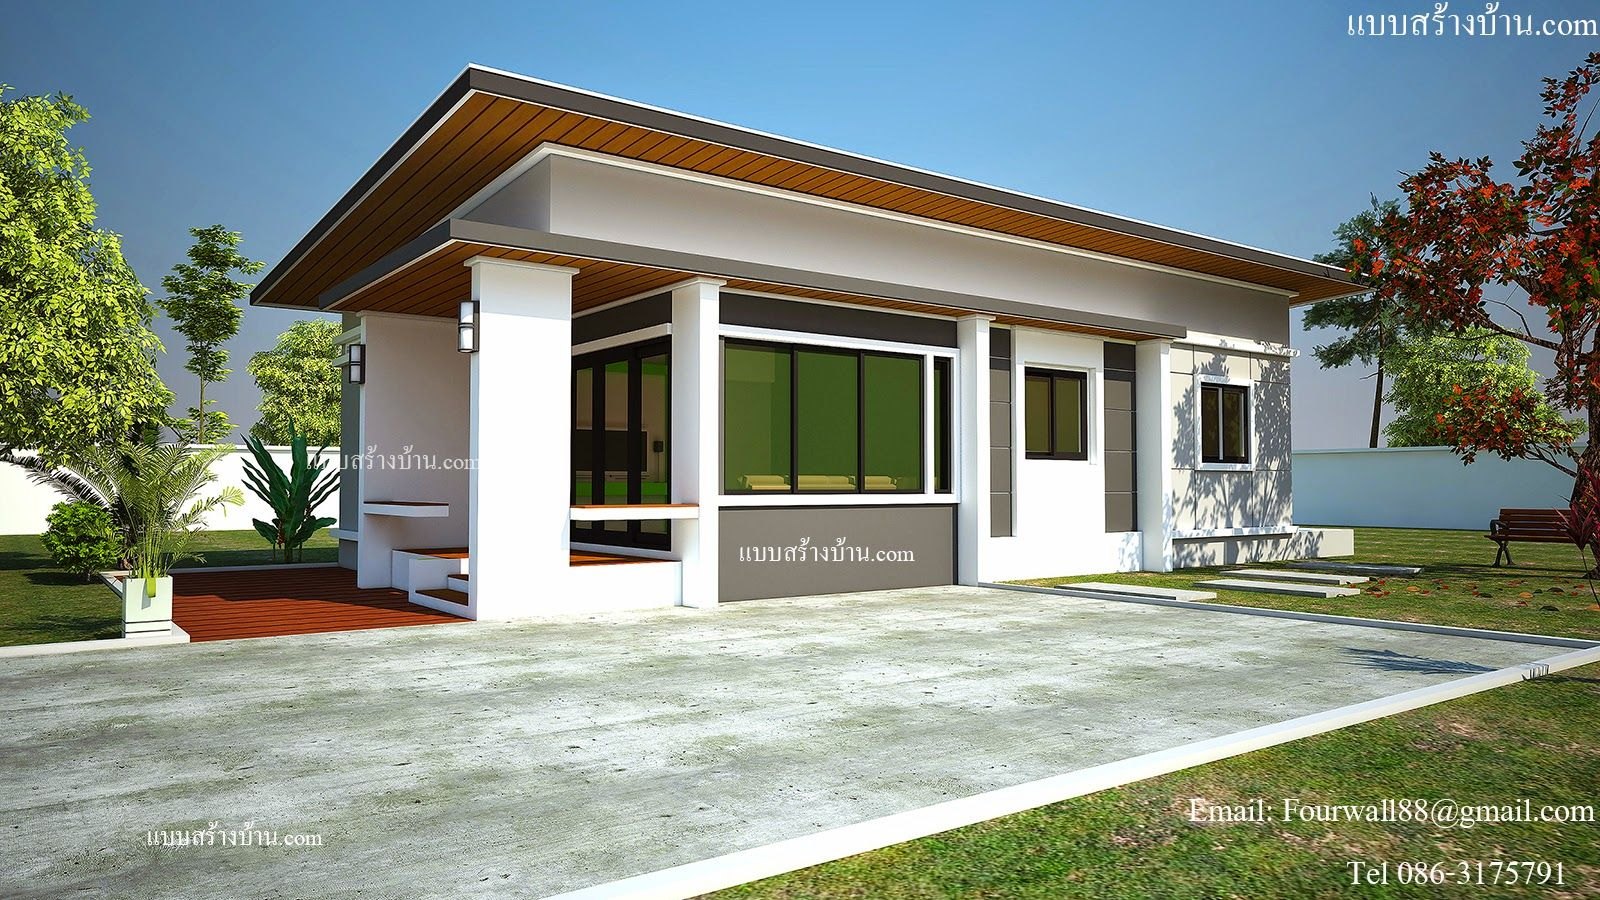 House Plans Made For You Beautiful House Plans Two Storey House House Plans